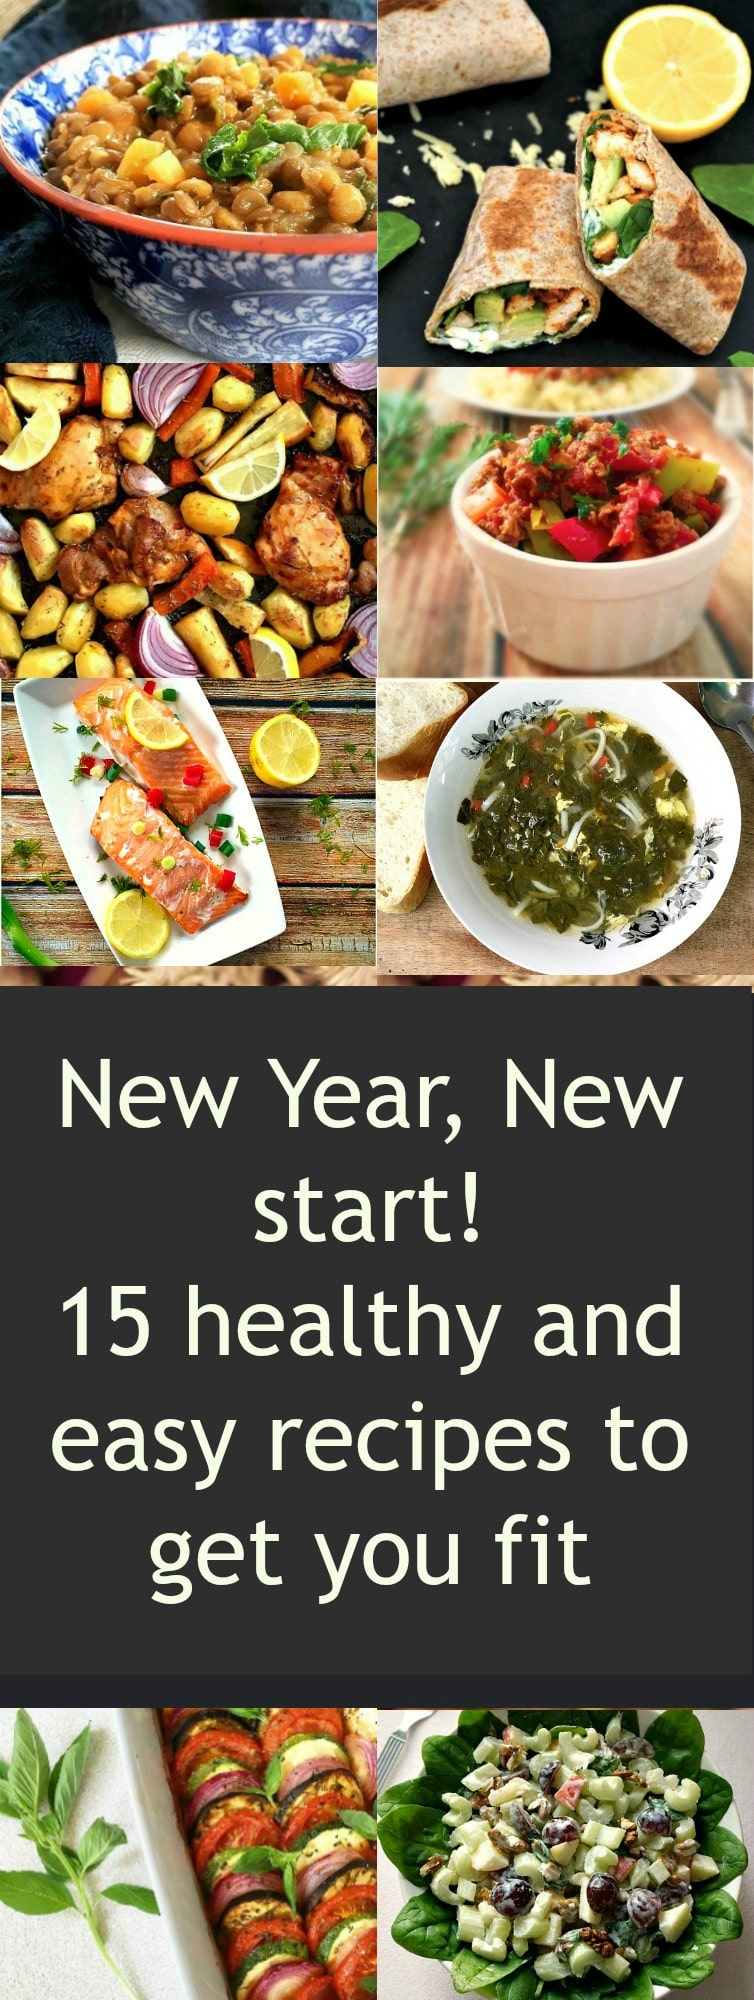 New Year, New Start! 15 healthy andeasy recipes to get you fit